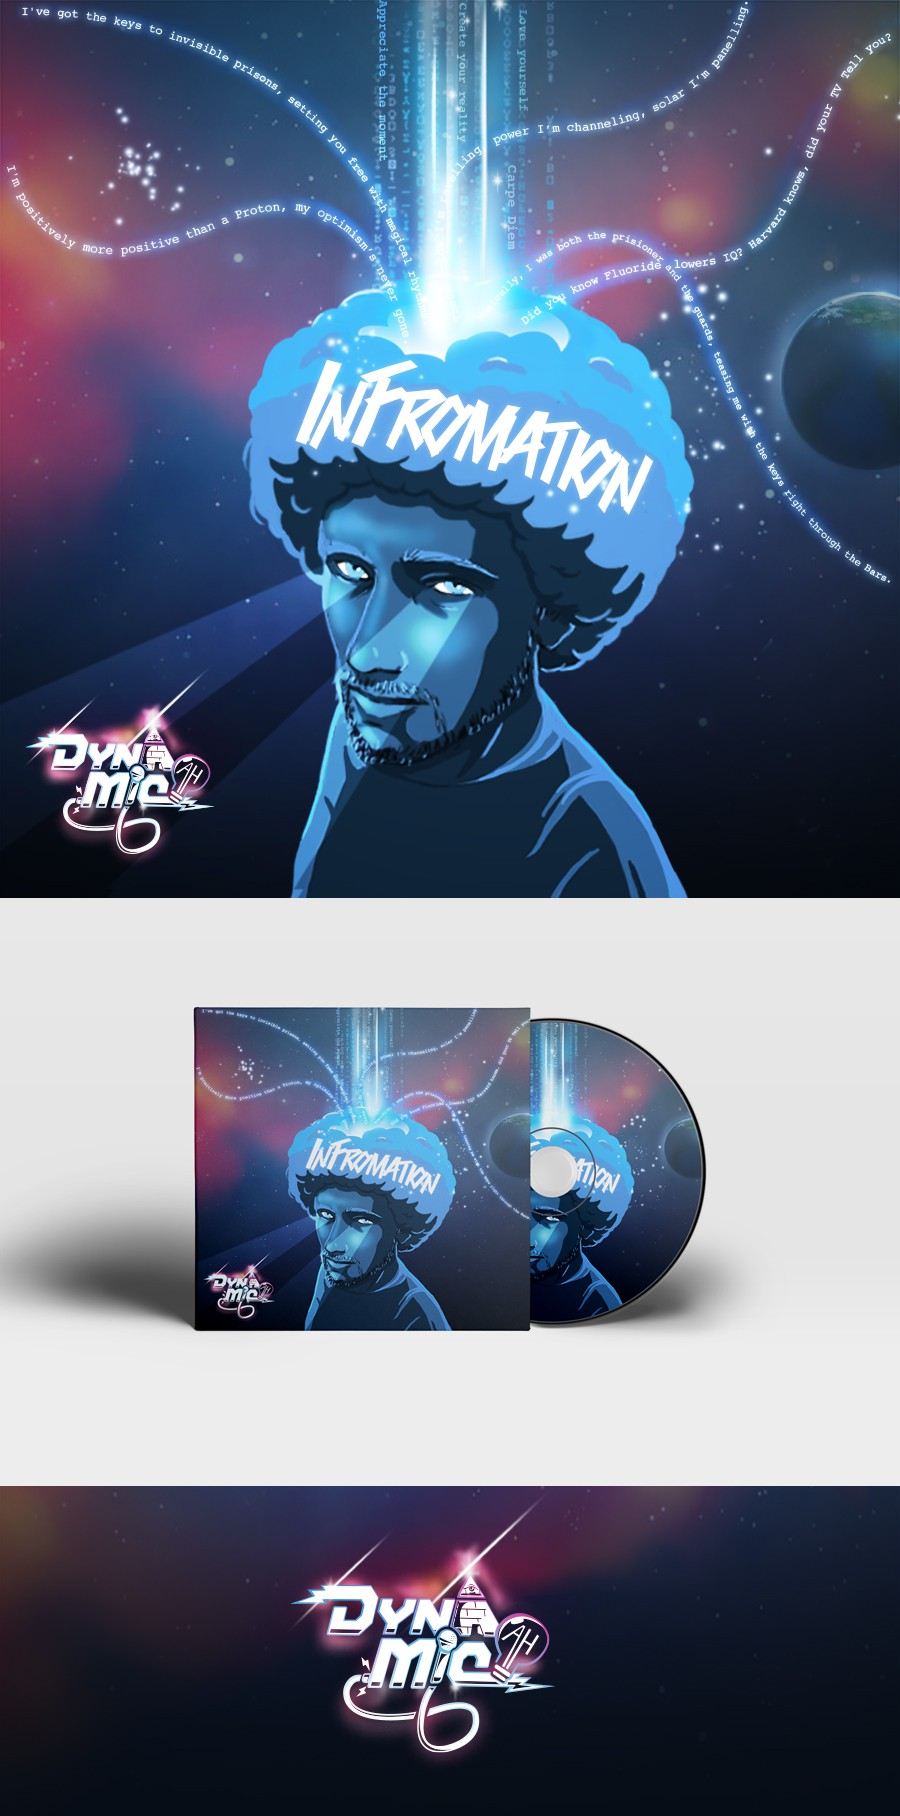 Be part of a movement - Design DynA-MicAH his new album cover.